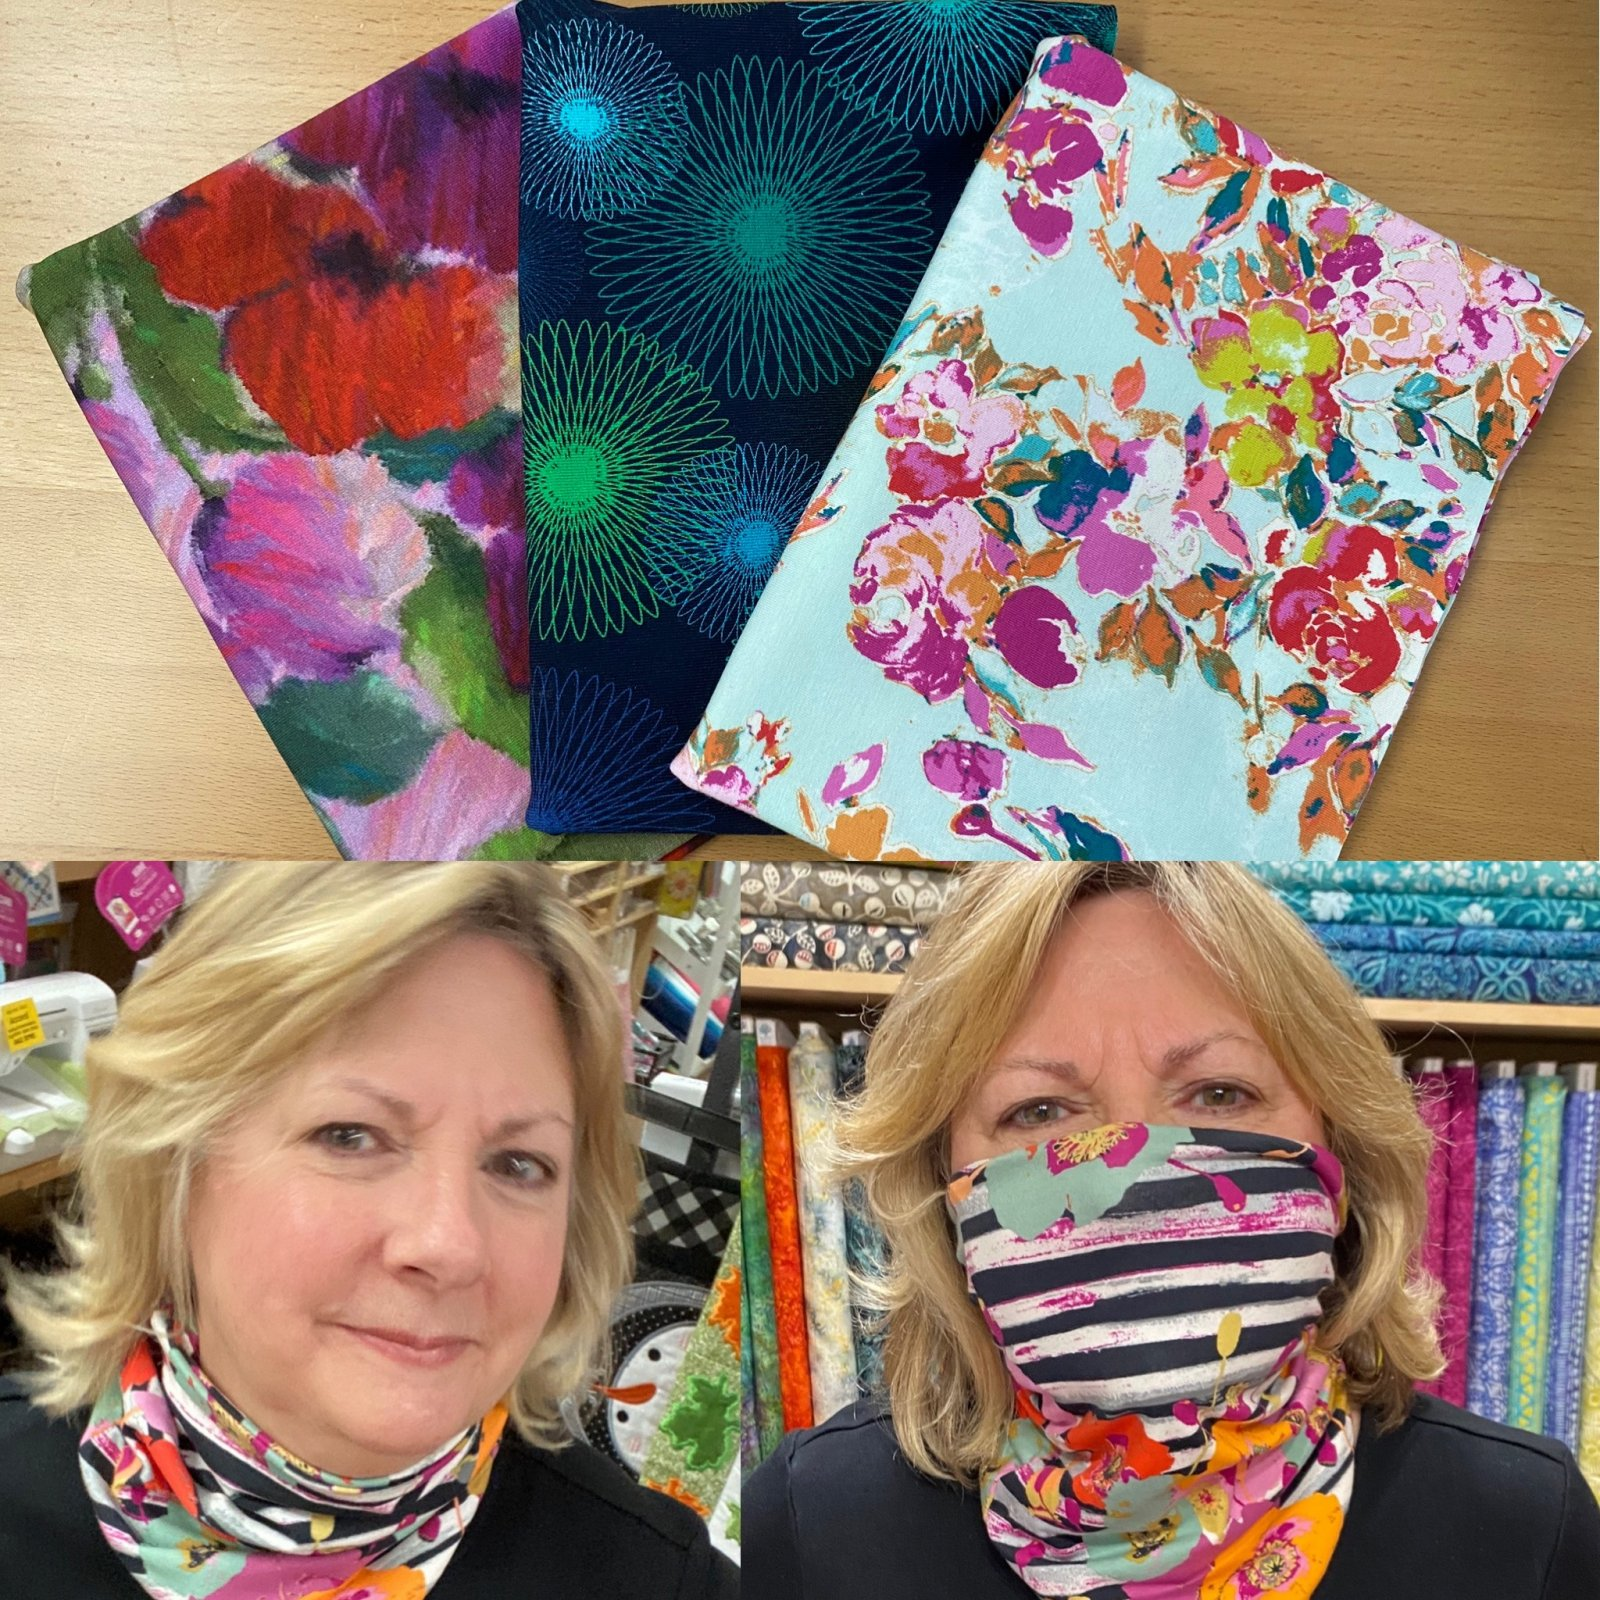 Full Bloom - Gloria Gaiter Face Covering Kit - MORE COMING SOON!